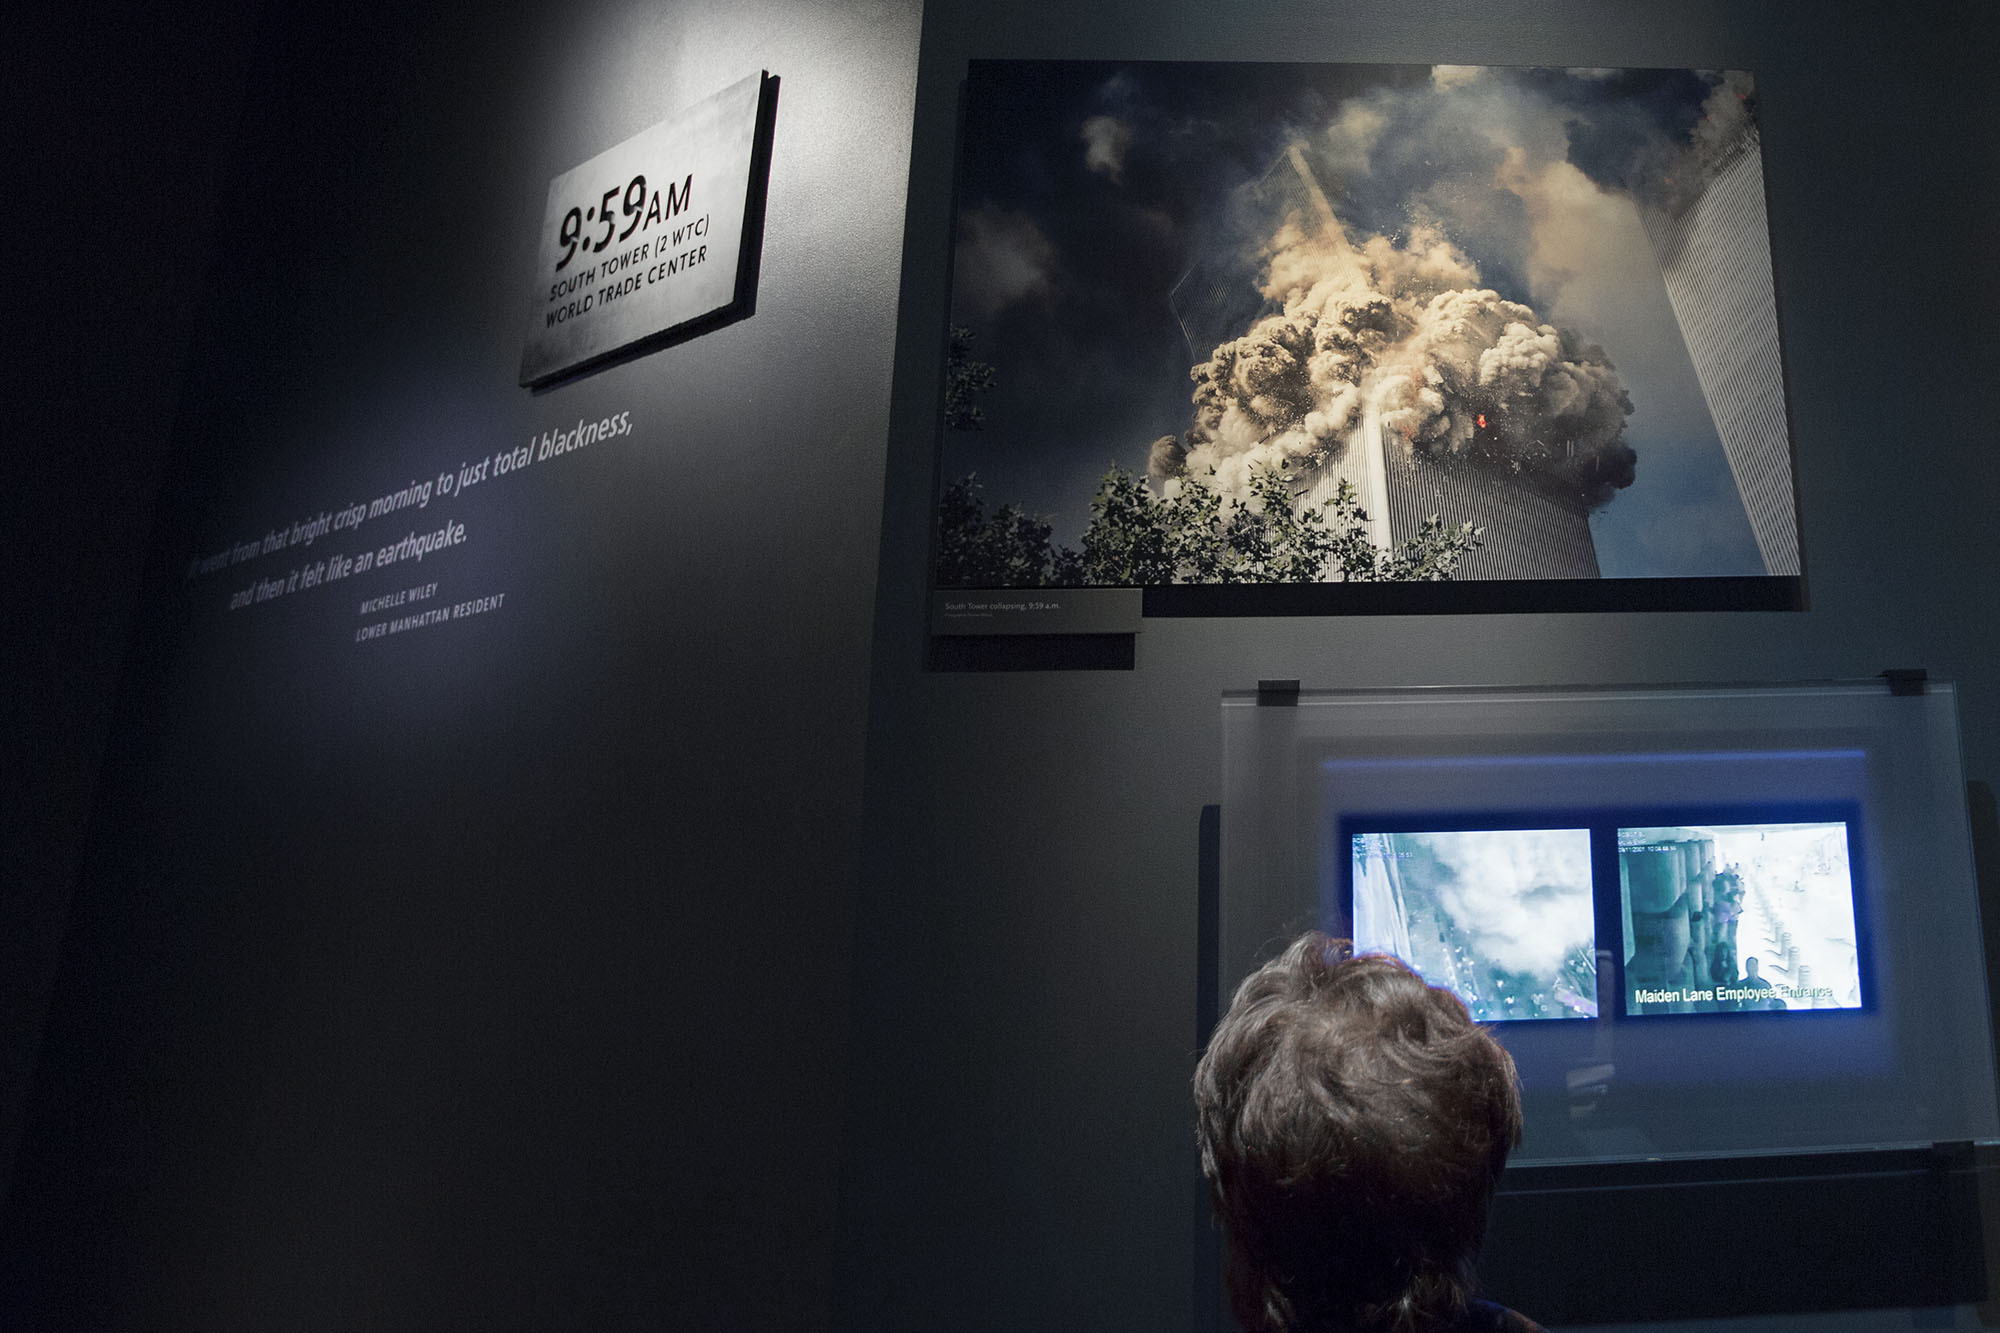 Permanent since September 2011: Thomas'picture of the South WTC Tower collapsing is showed at the 9/11 Memorial Museum in New York.